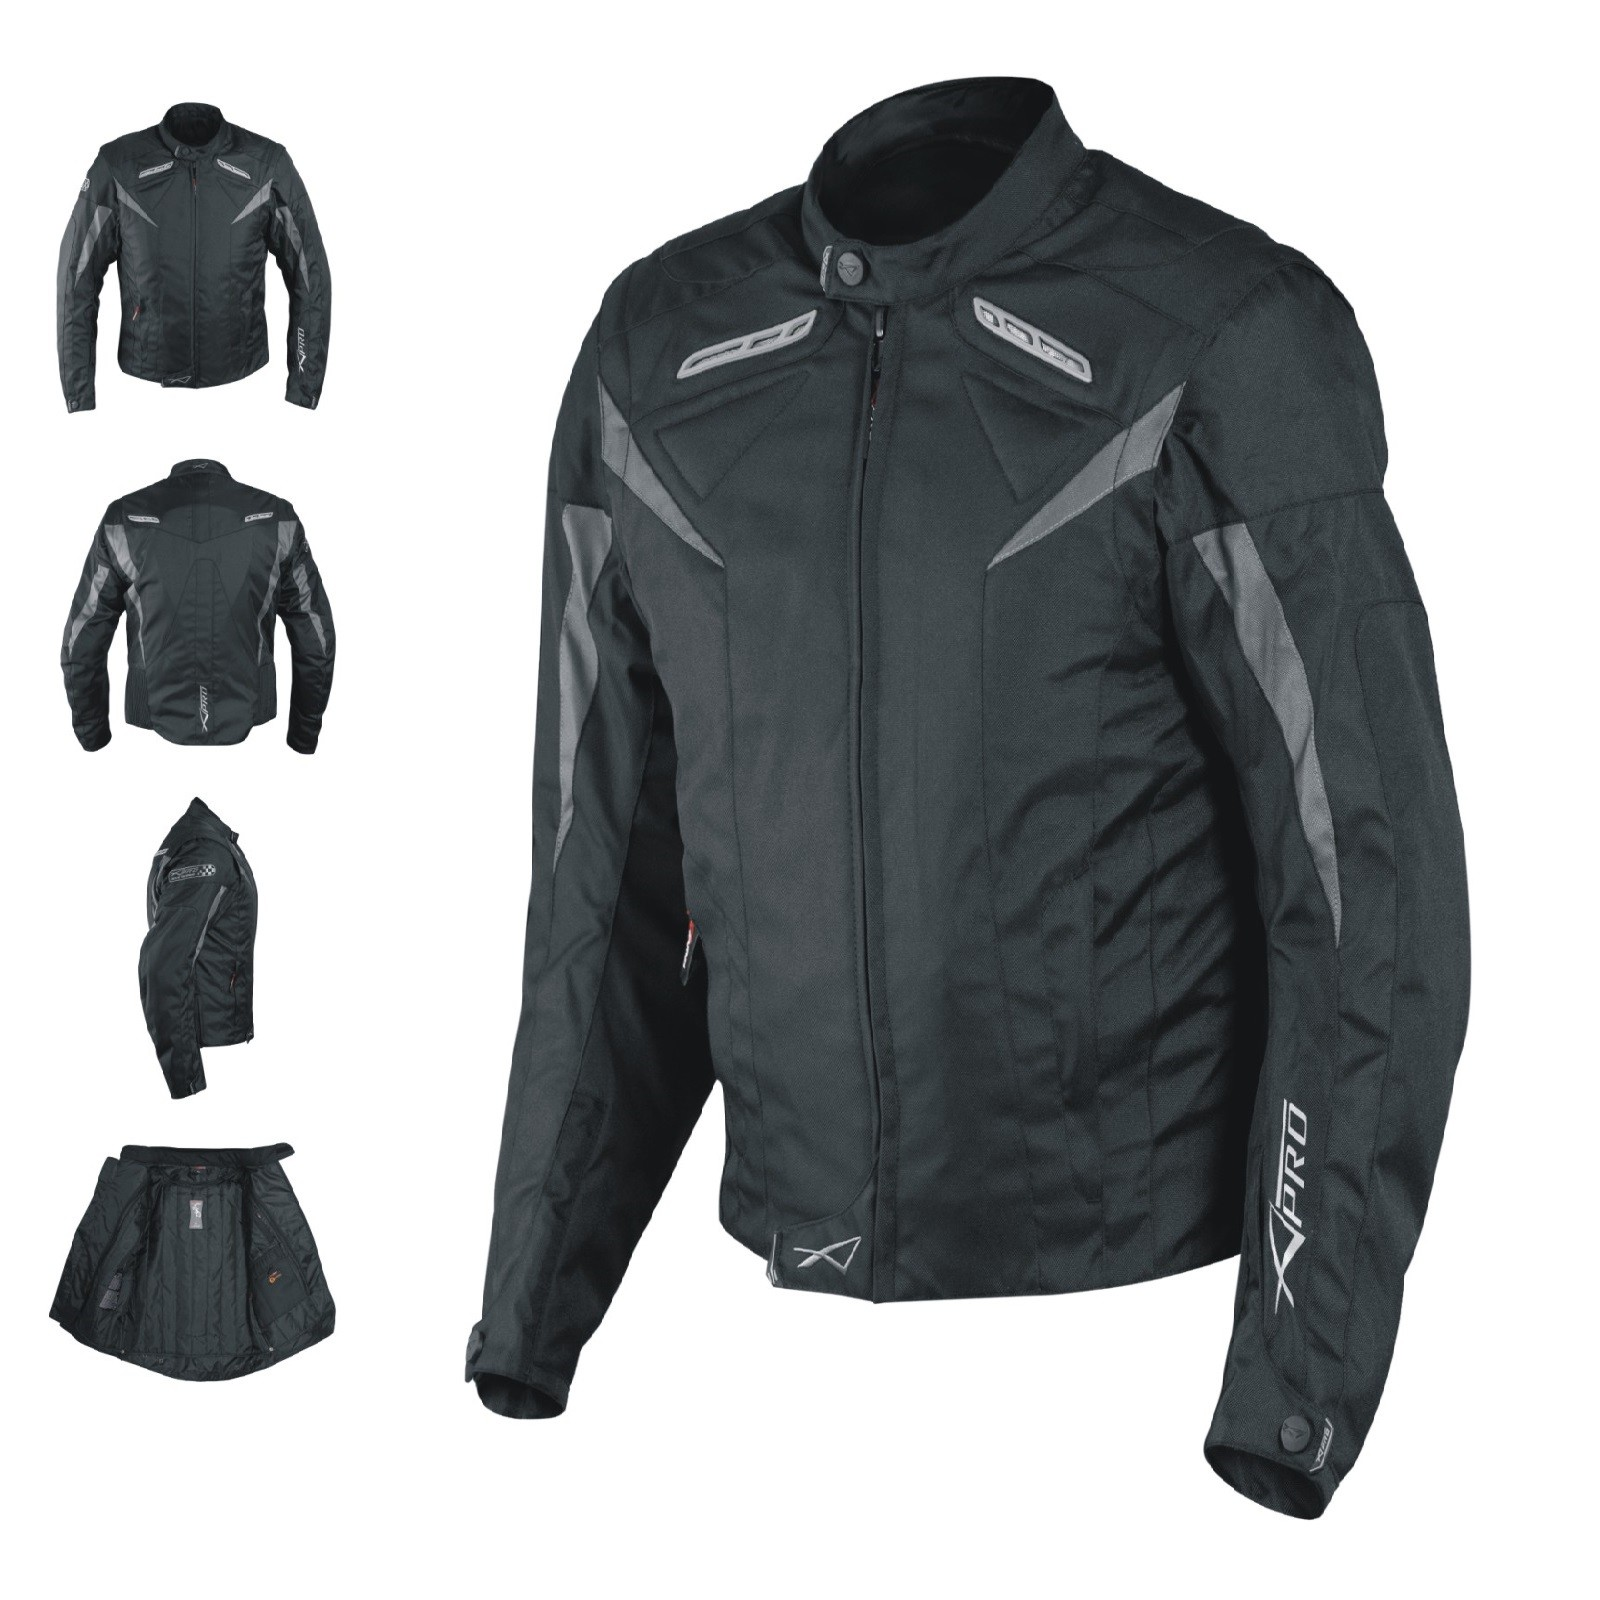 Hart-Lady_Donna-A-Pro-Giacca-Jacket-Black-Nero-Moto-Motorcycle-Sonic-Moto